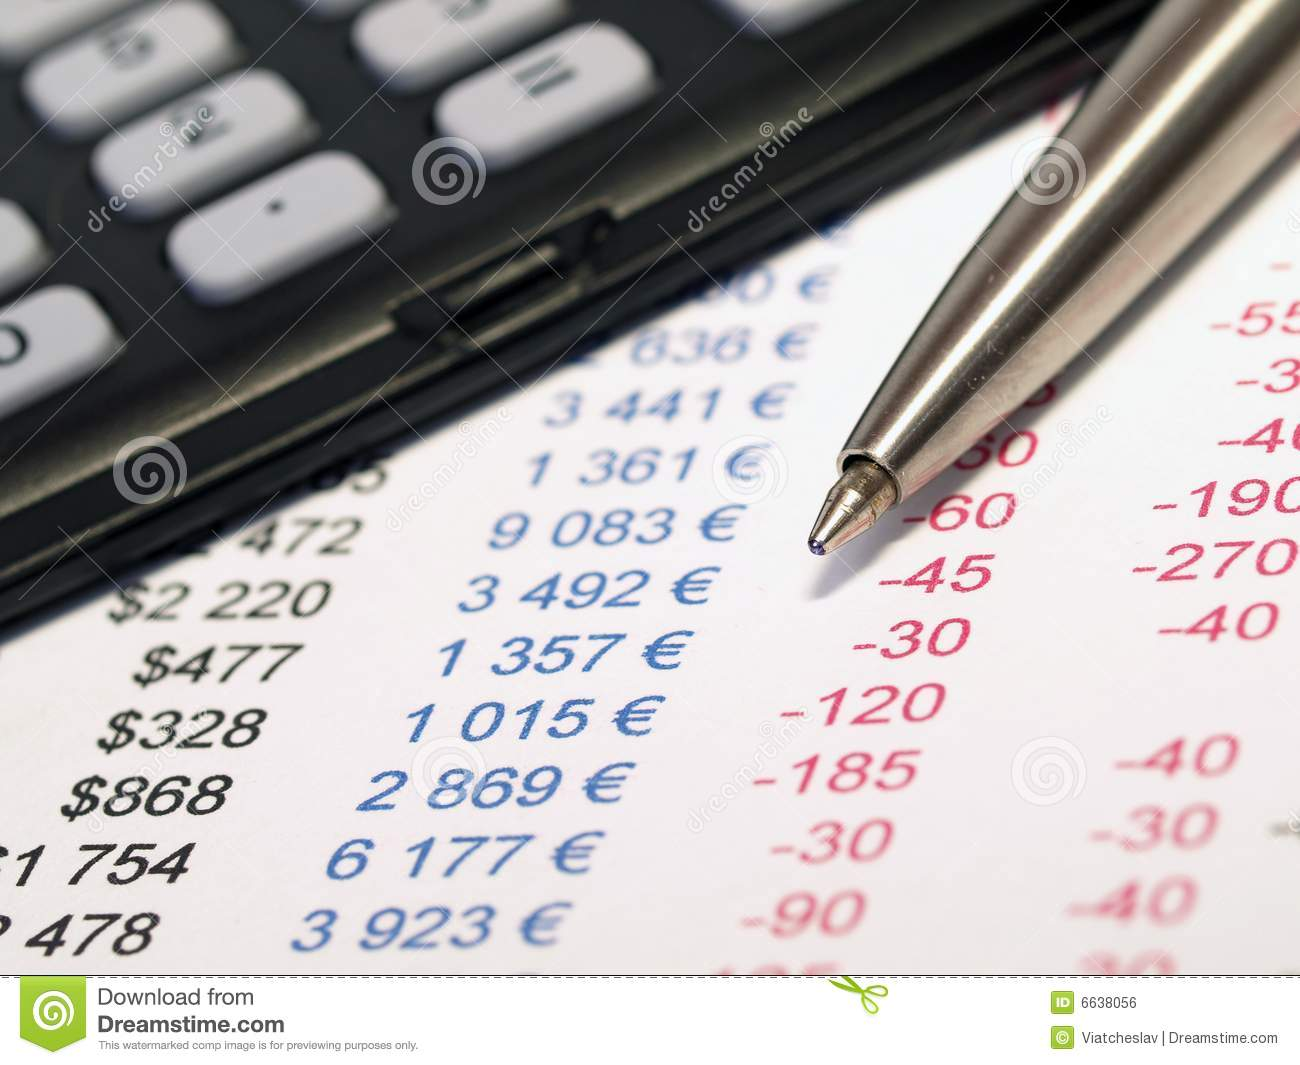 With pen and calculator. Balance sheet clipart